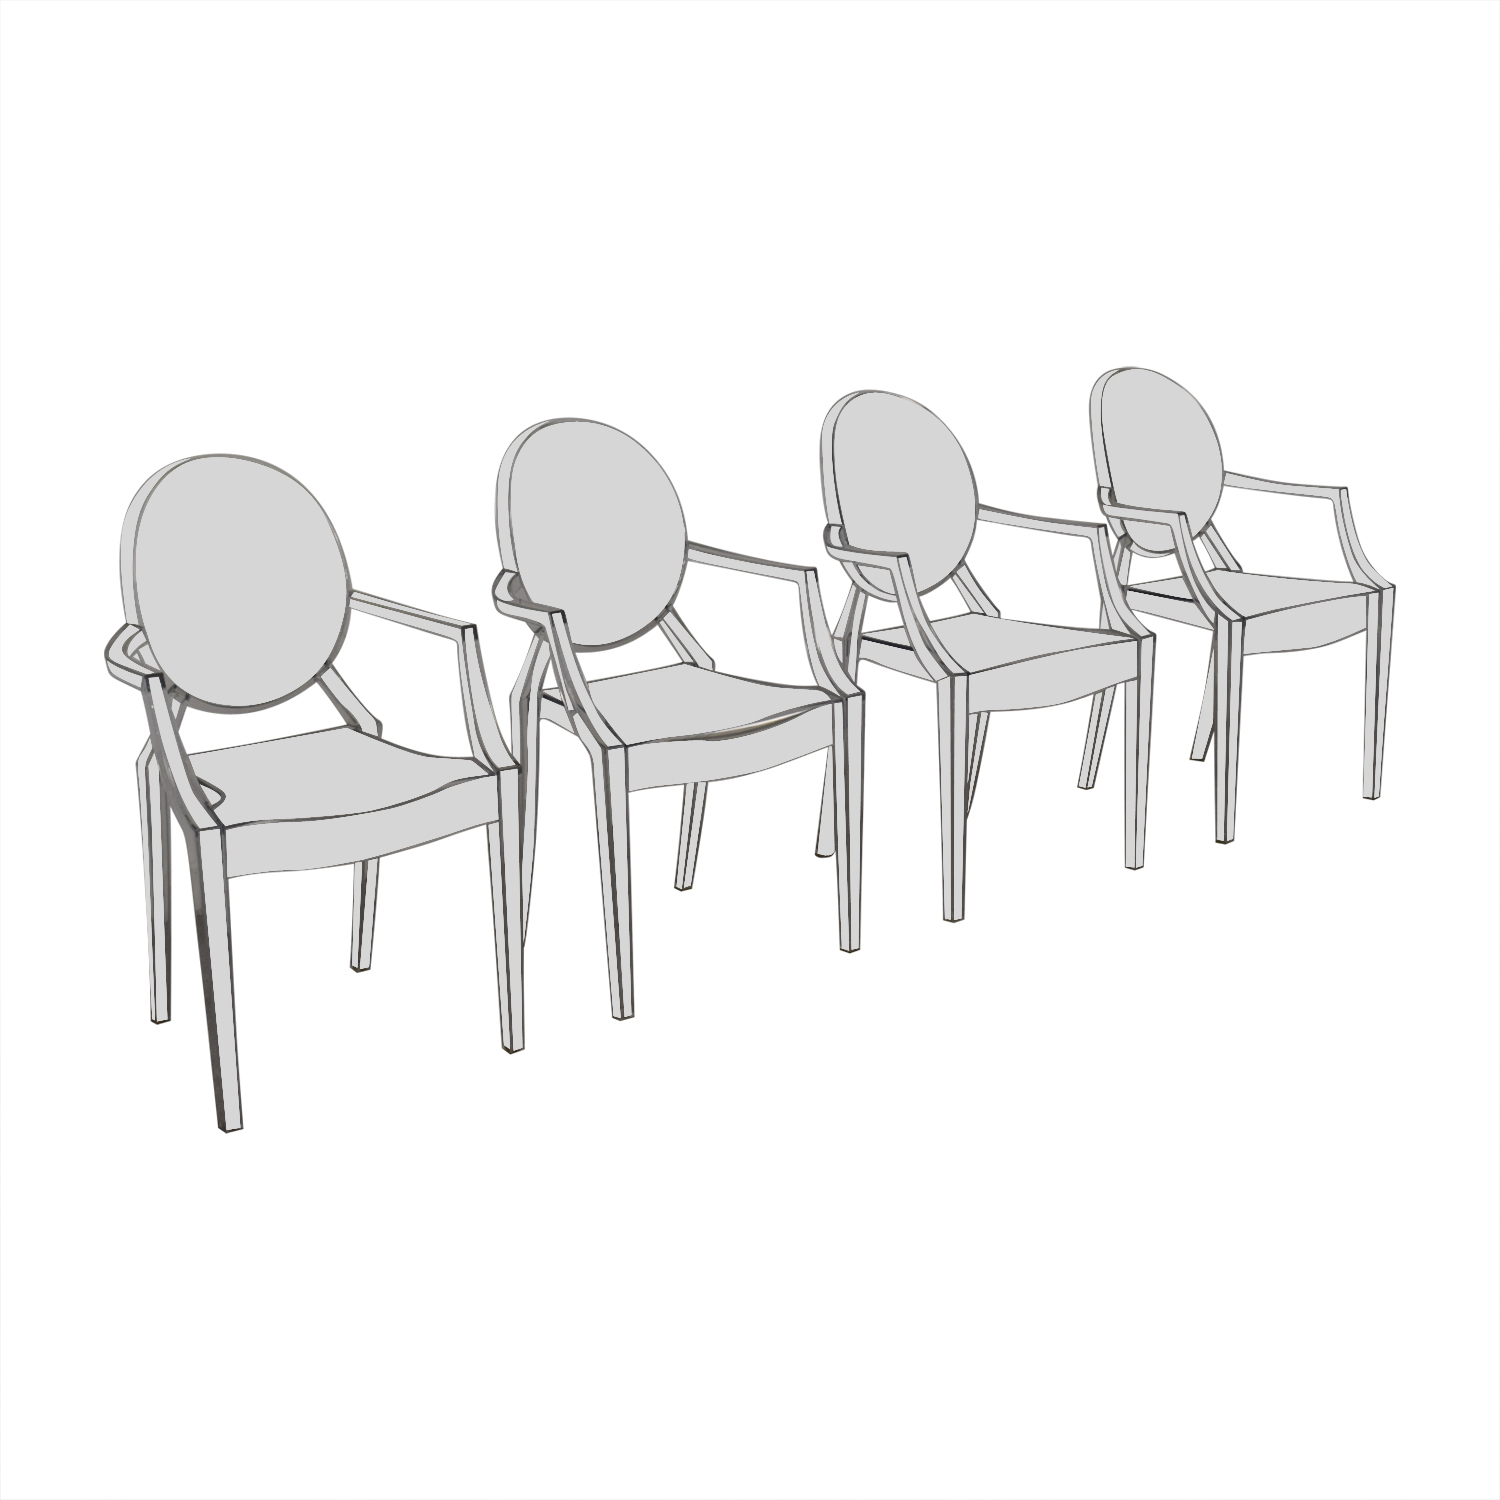 Poly & Bark Poly & Bark Ghost Style Acrylic Arm Chair price